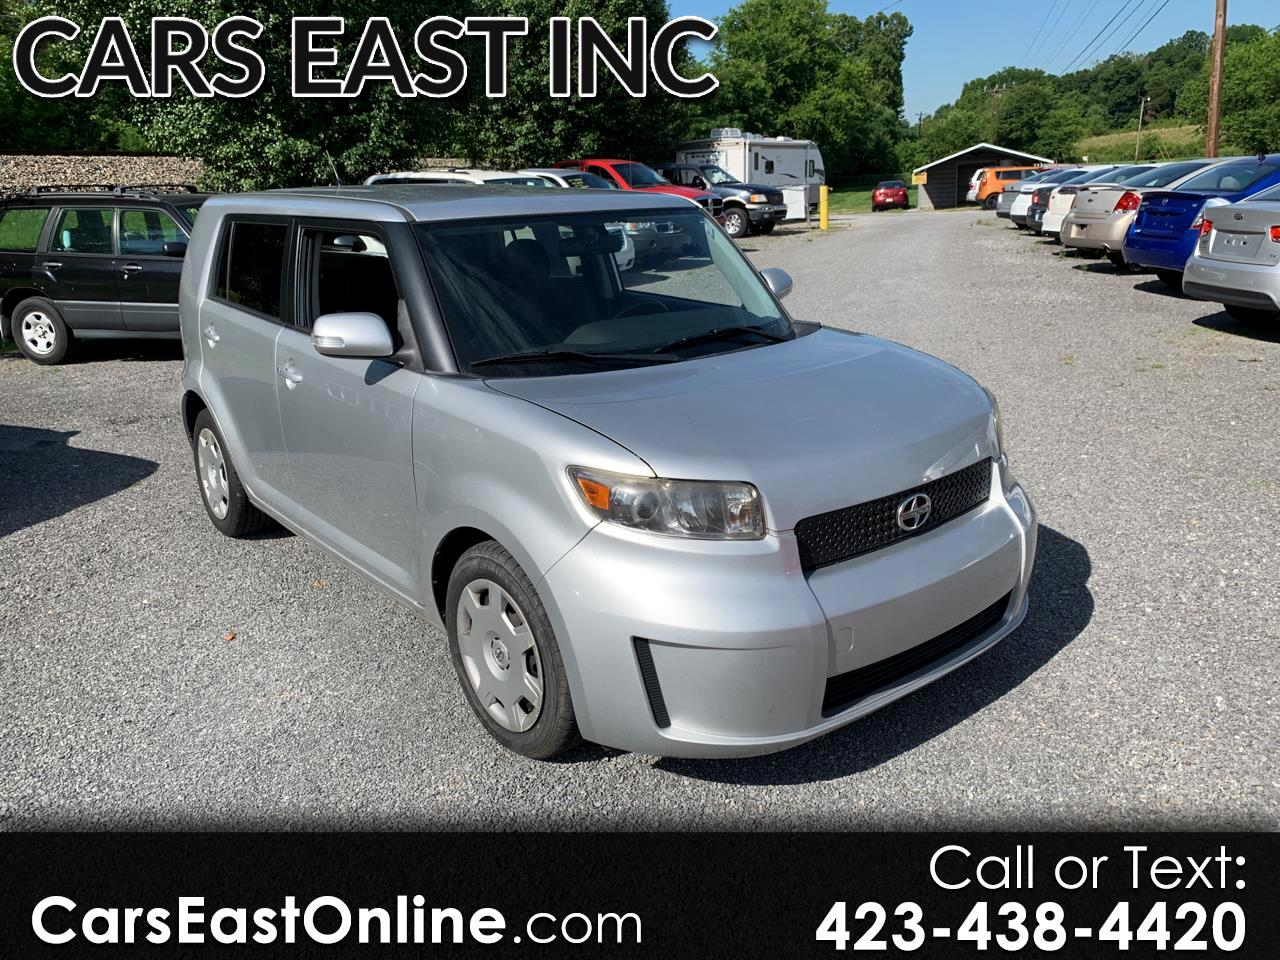 2008 Scion xB 5dr Wgn Auto (Natl)